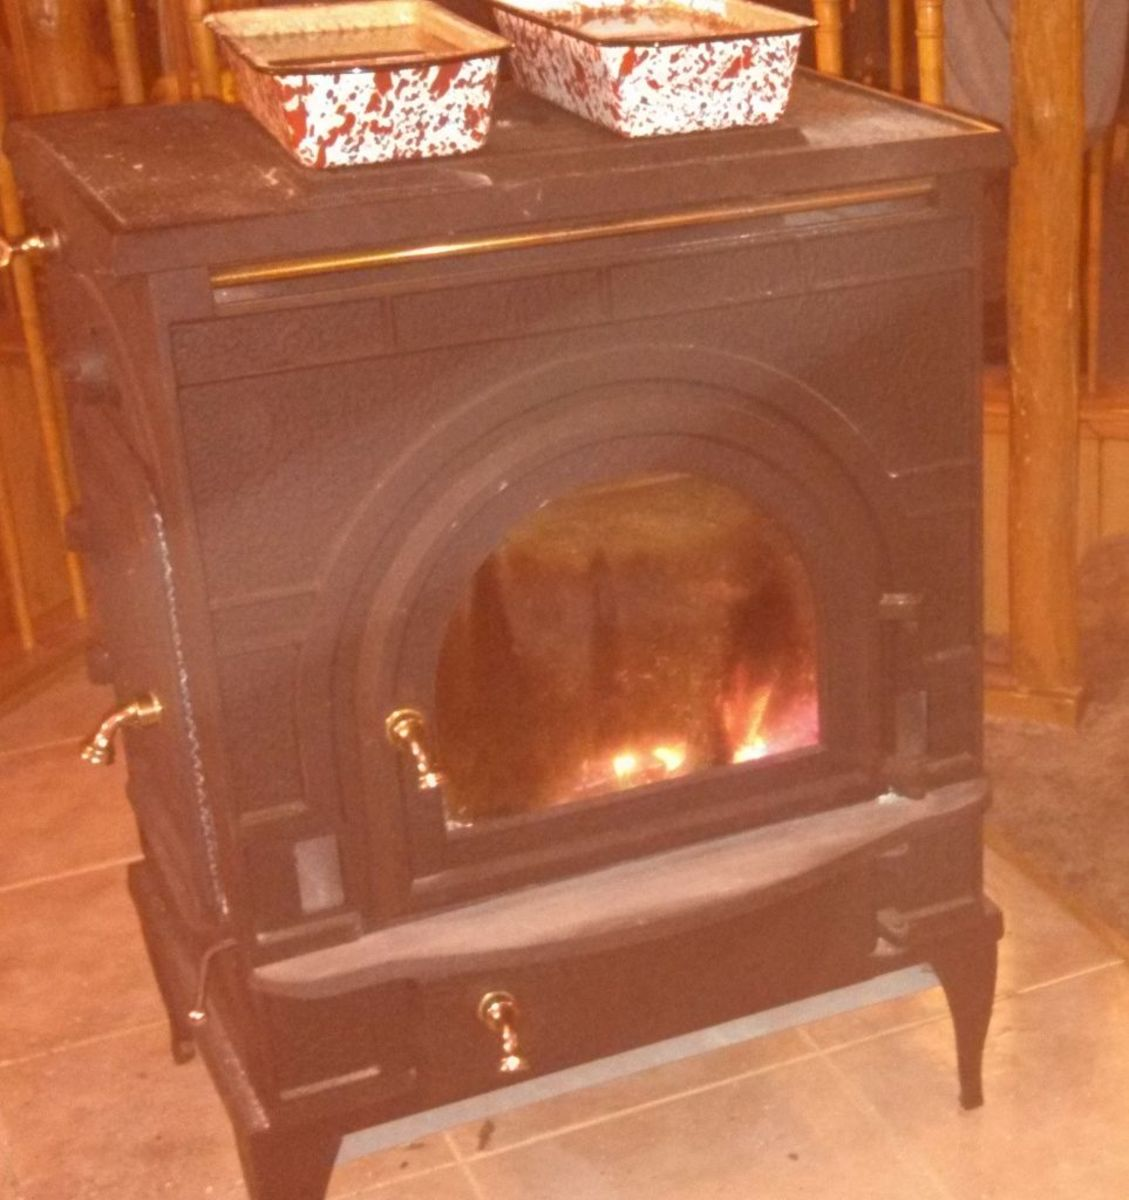 From there, it becomes a fire starter on a cold winter's night.